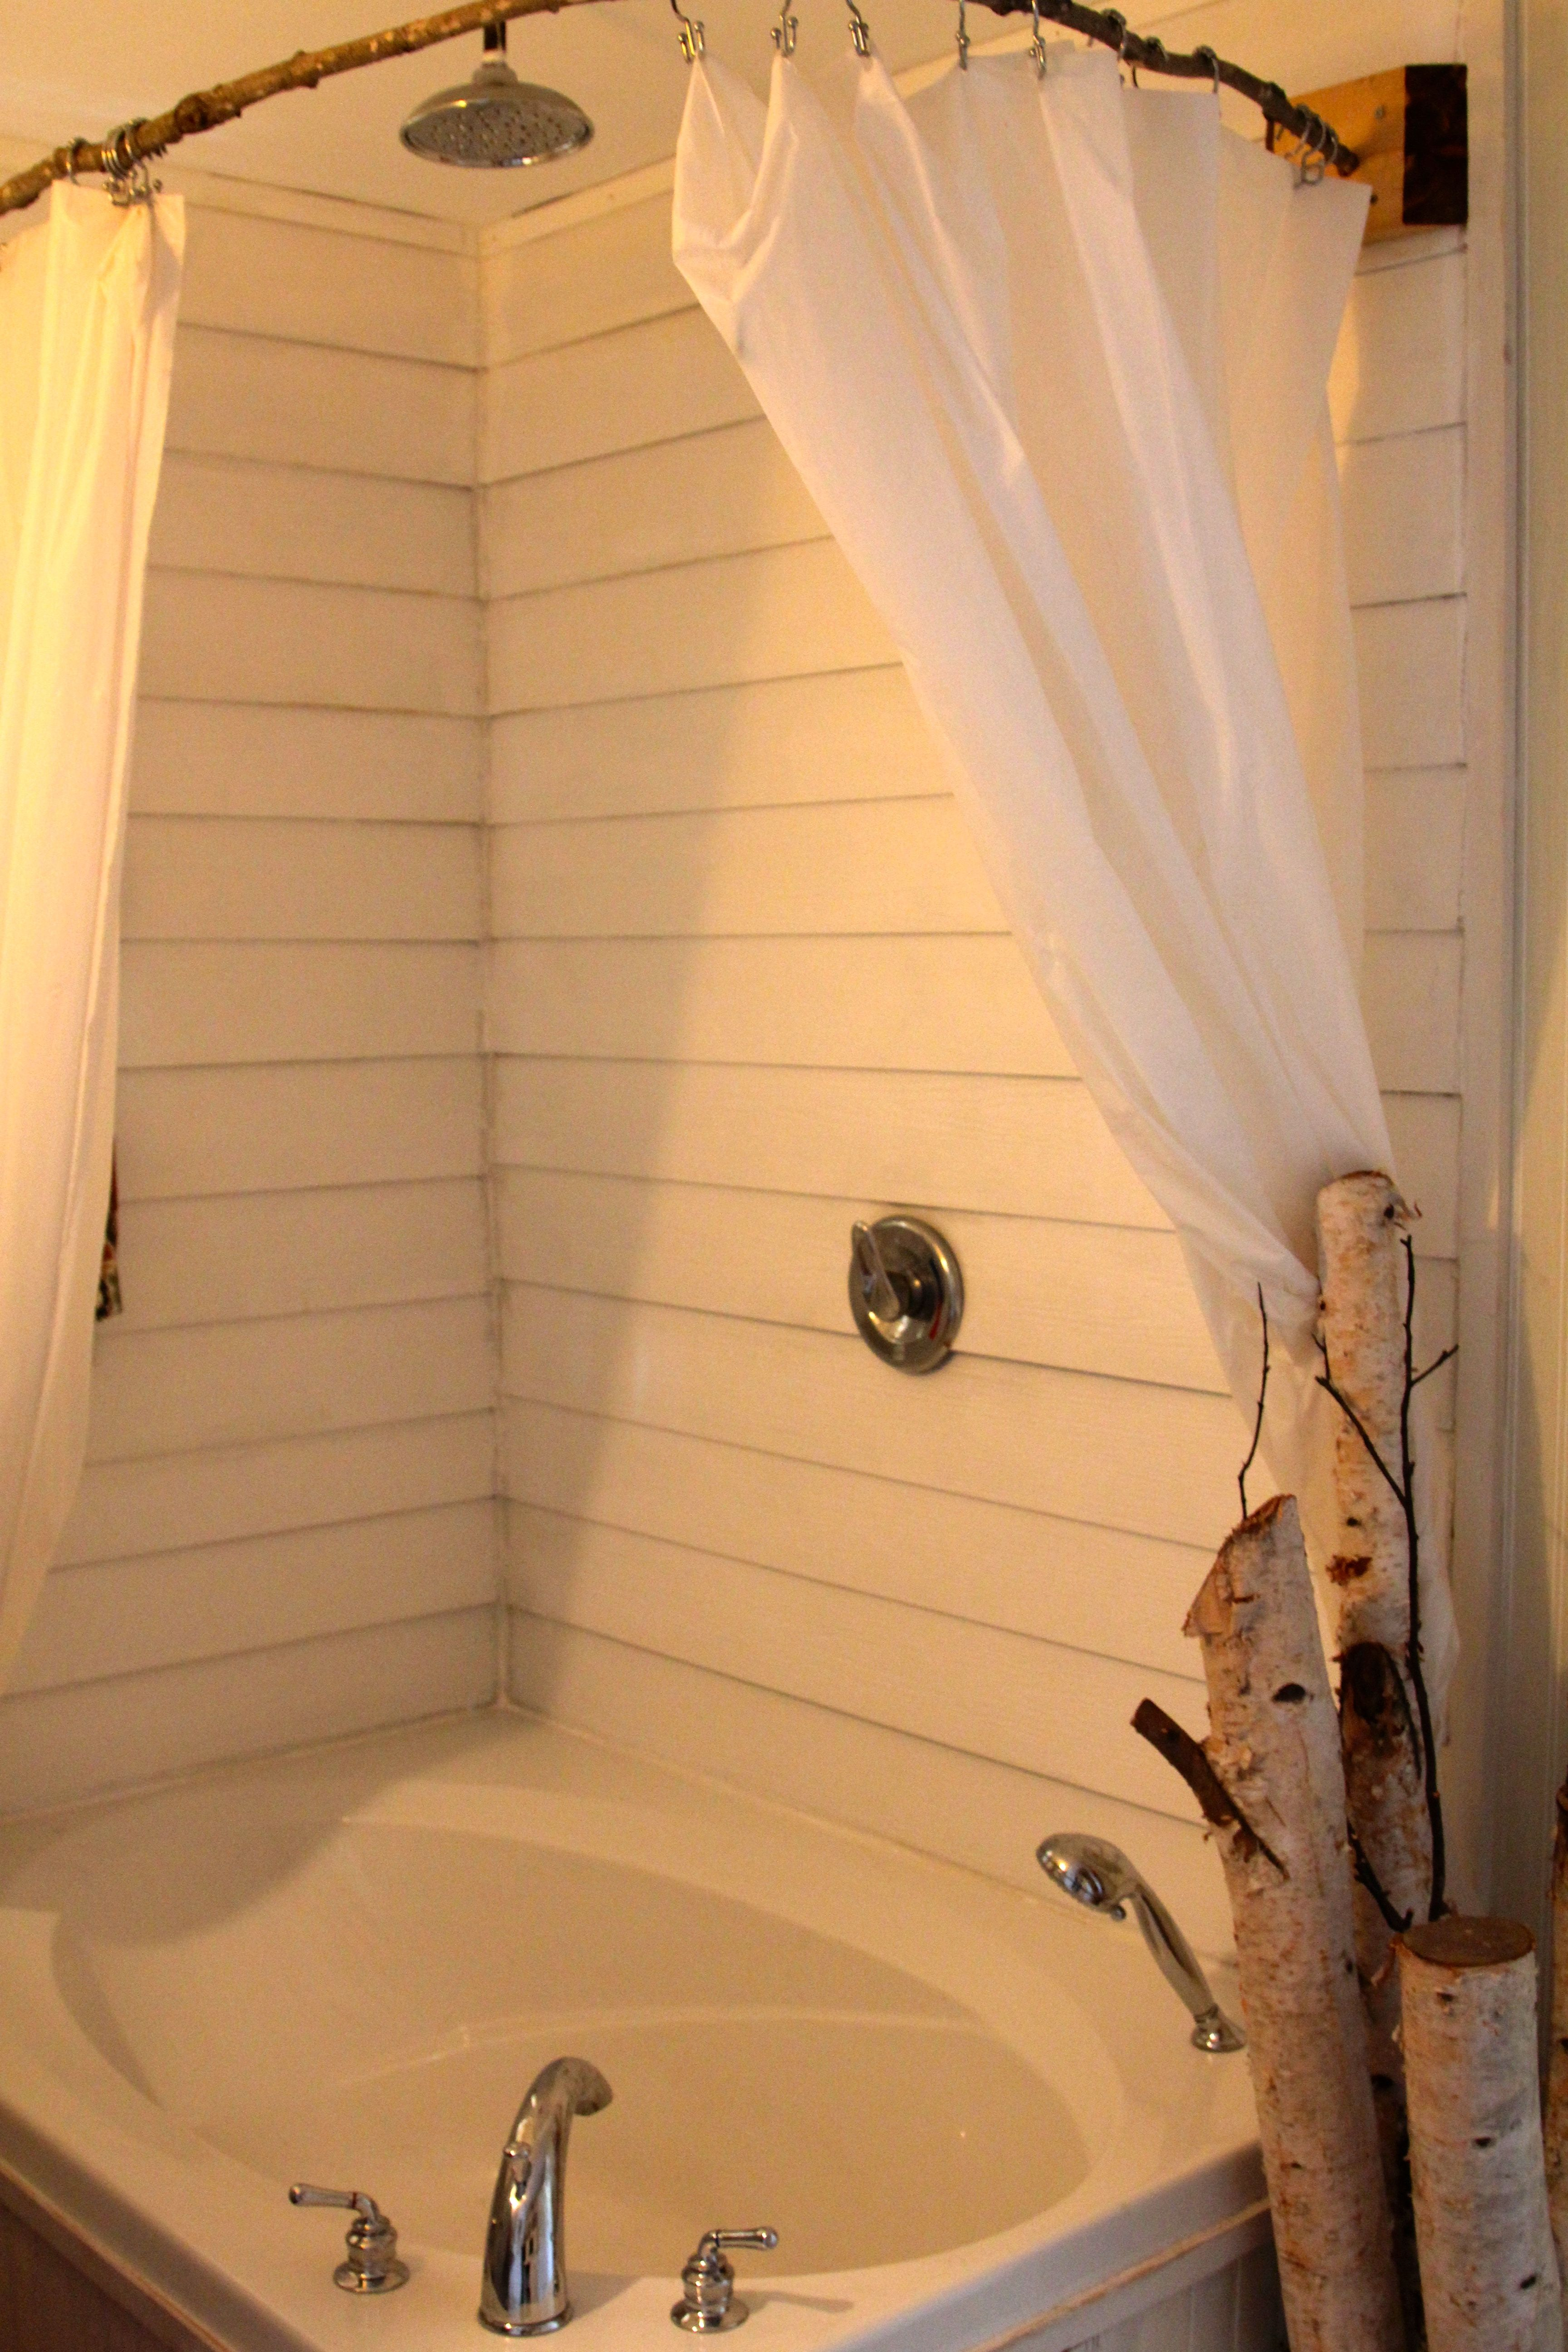 Using Hardi Plank Siding As Bath Surround Harvesting